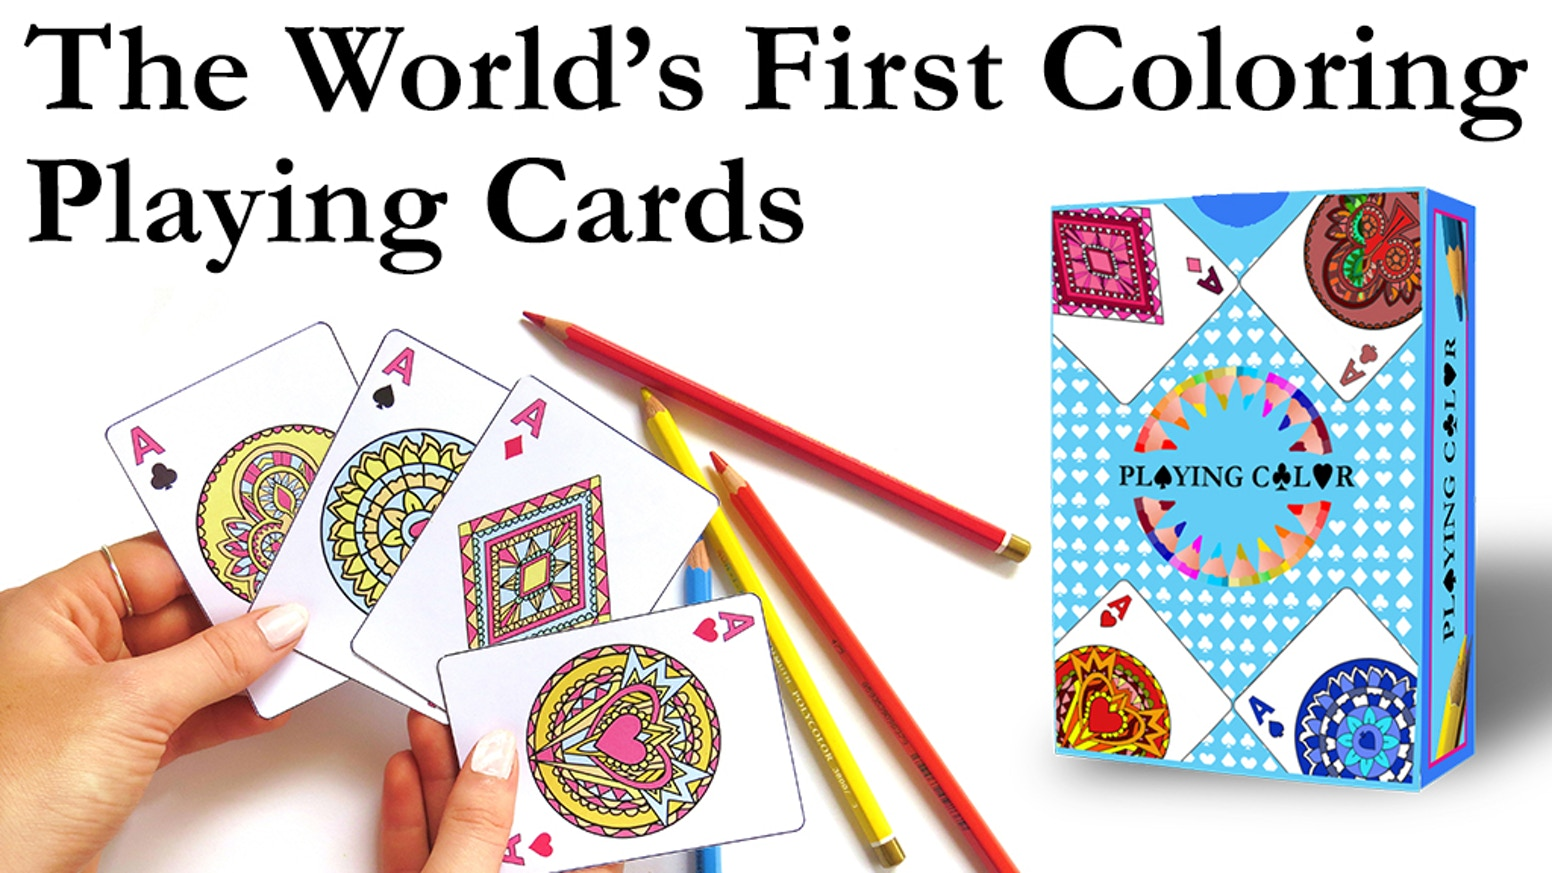 Fusing Coloring Books and Playing Cards. Check them out here at: http://www.playingcolor.com/